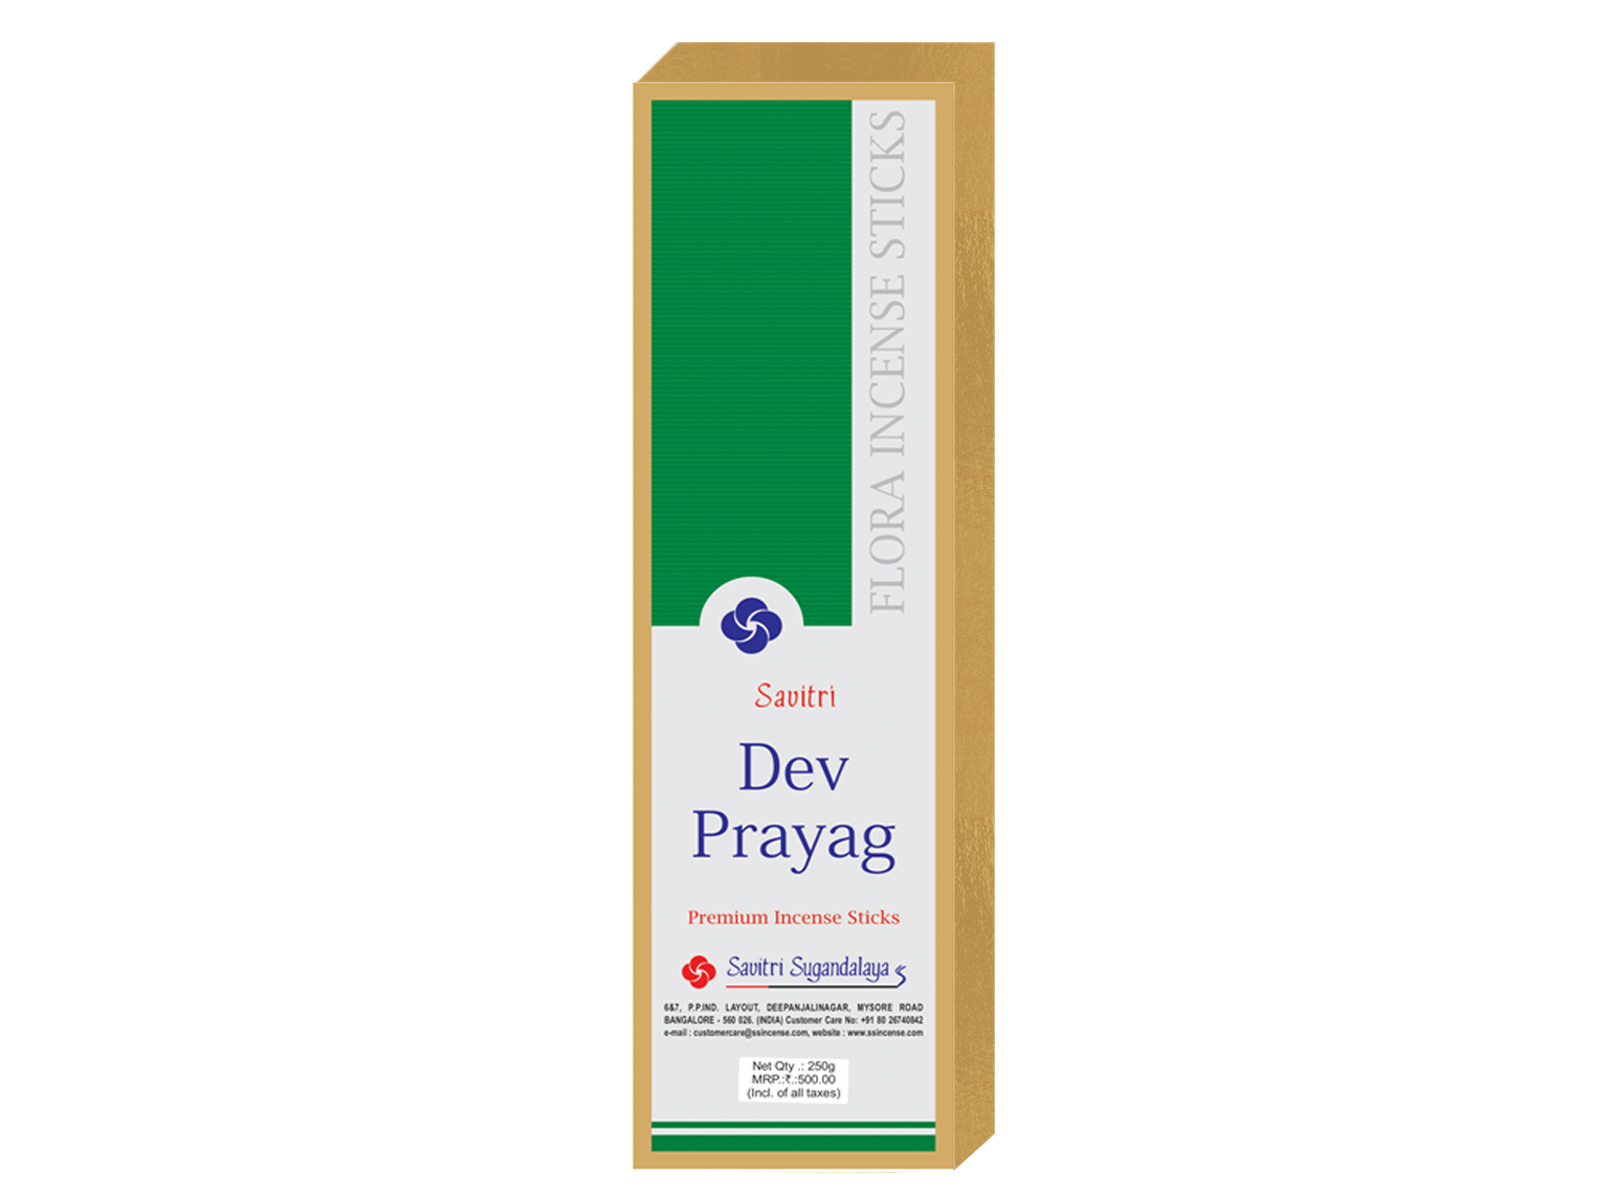 Dev Prayag_gold Box